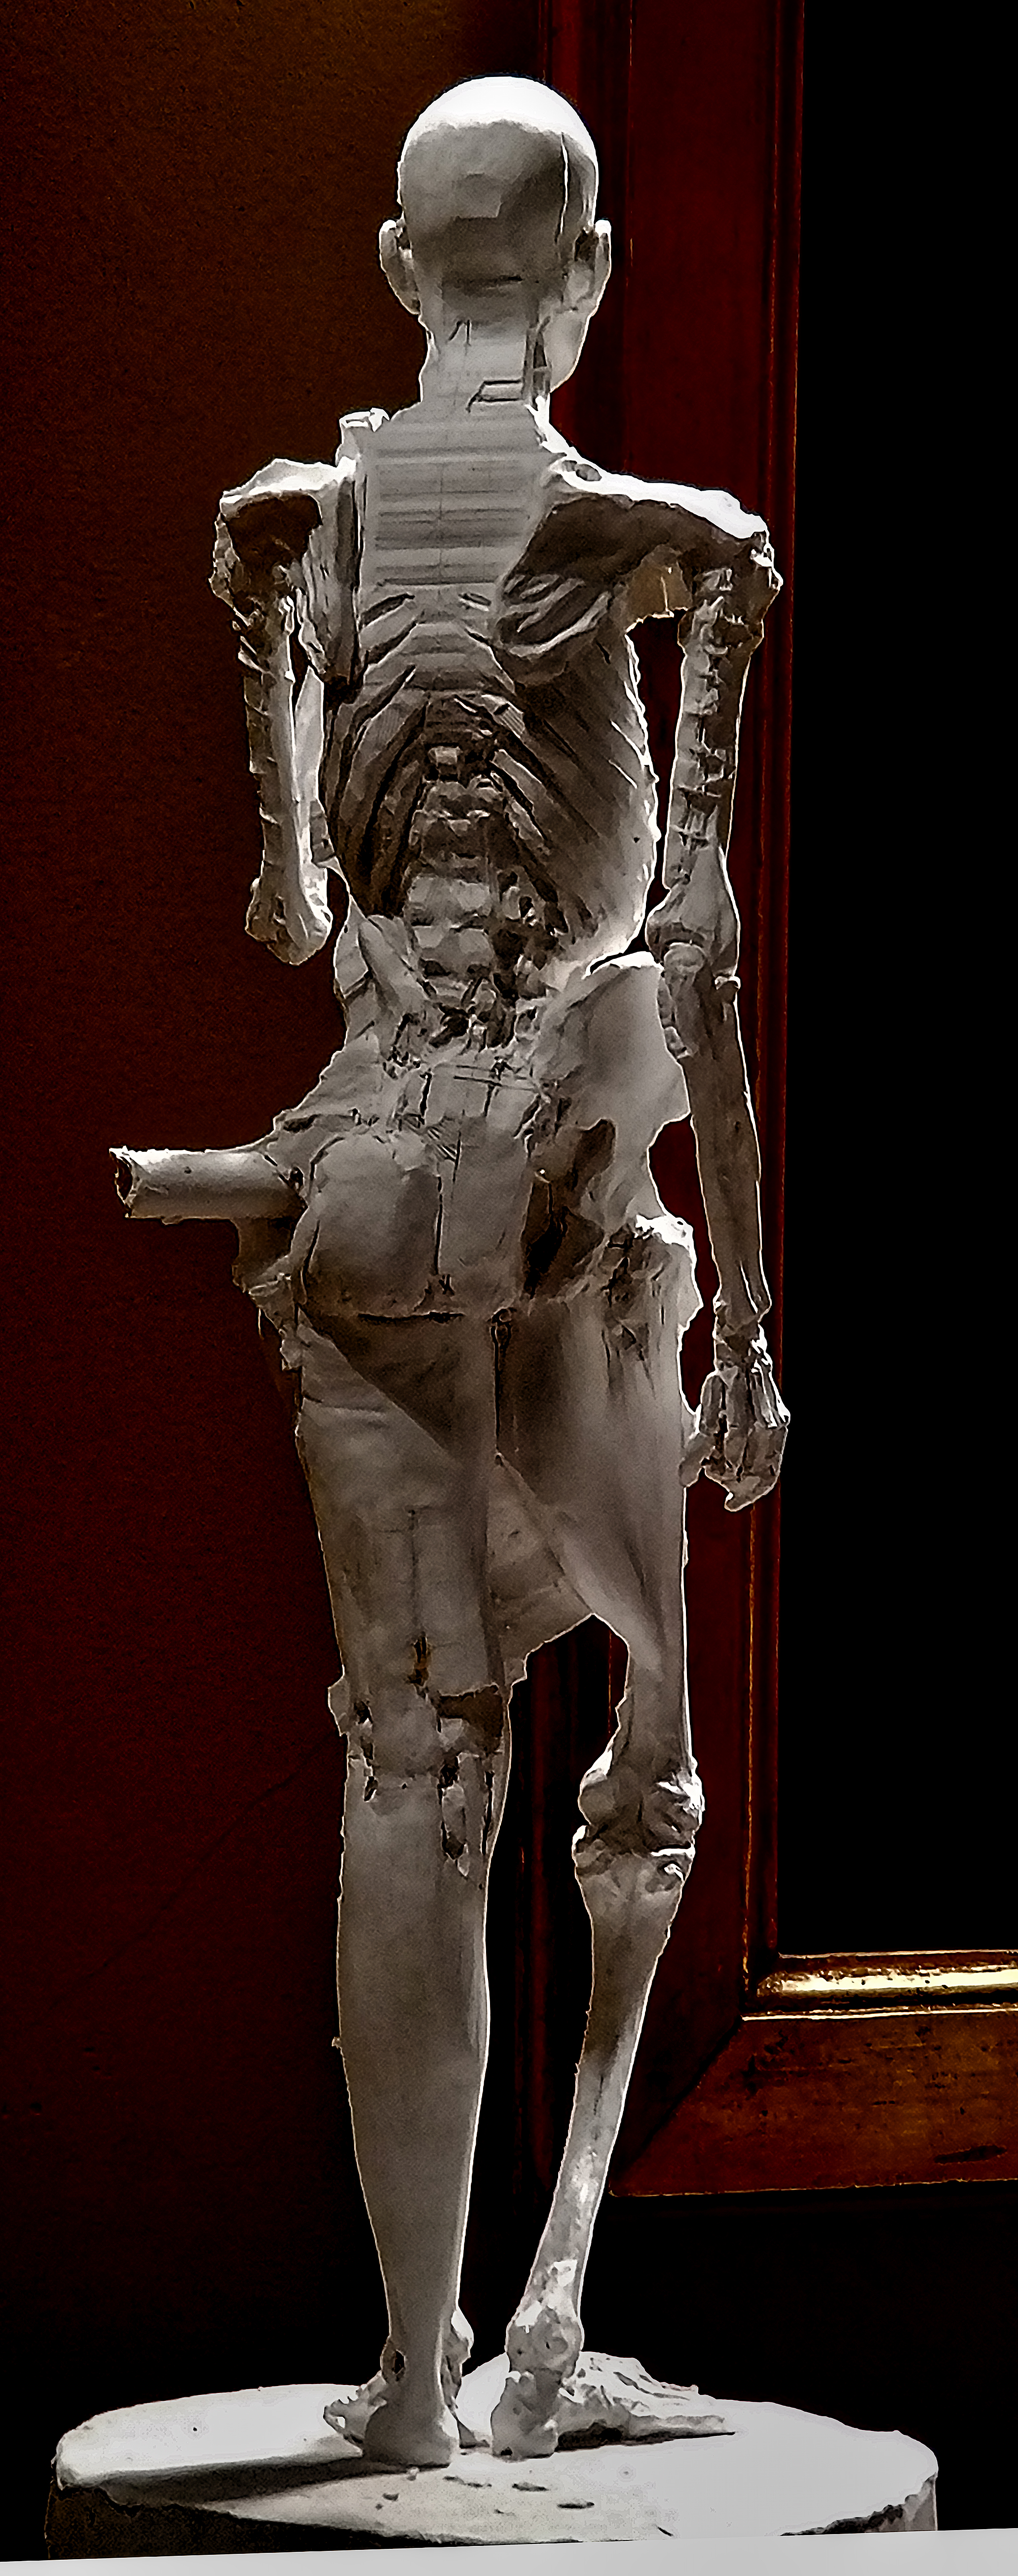 Anatomy Figure Class Demonstration Sculpture, Plaster - unchased - raw, Ana Russian Back View 2